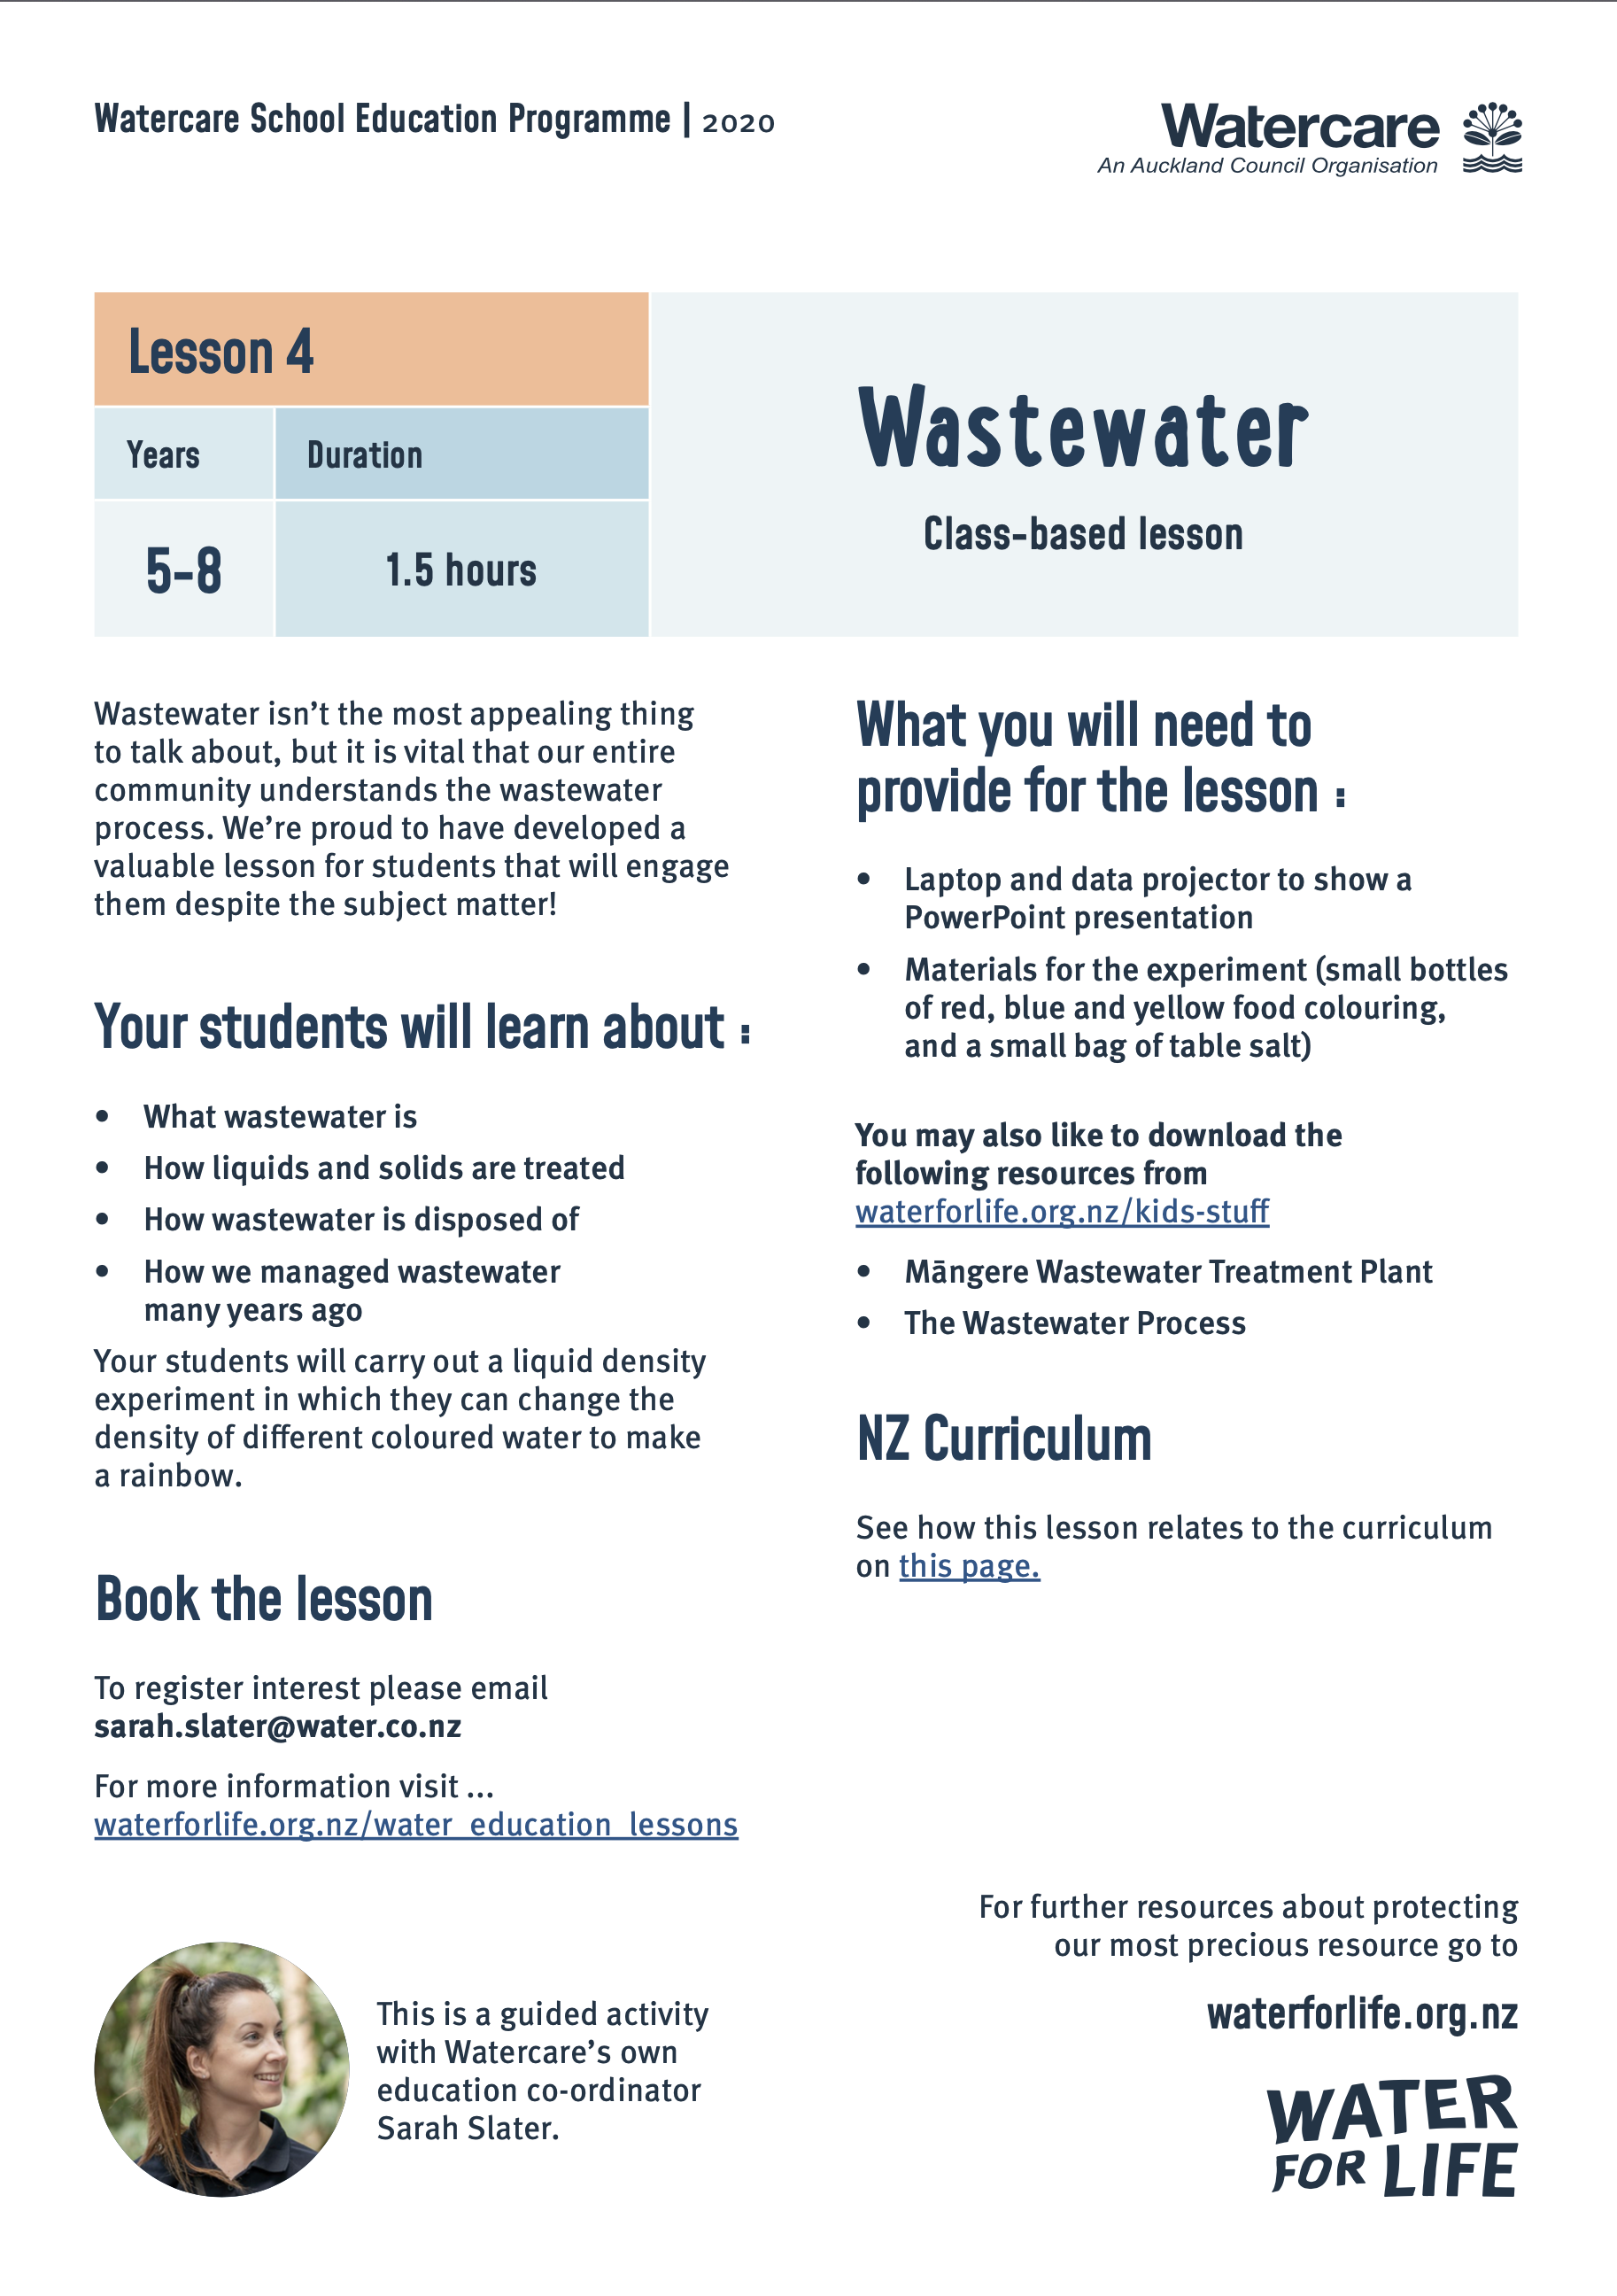 WFL_edu_Lesson4_Wastewater.pdf